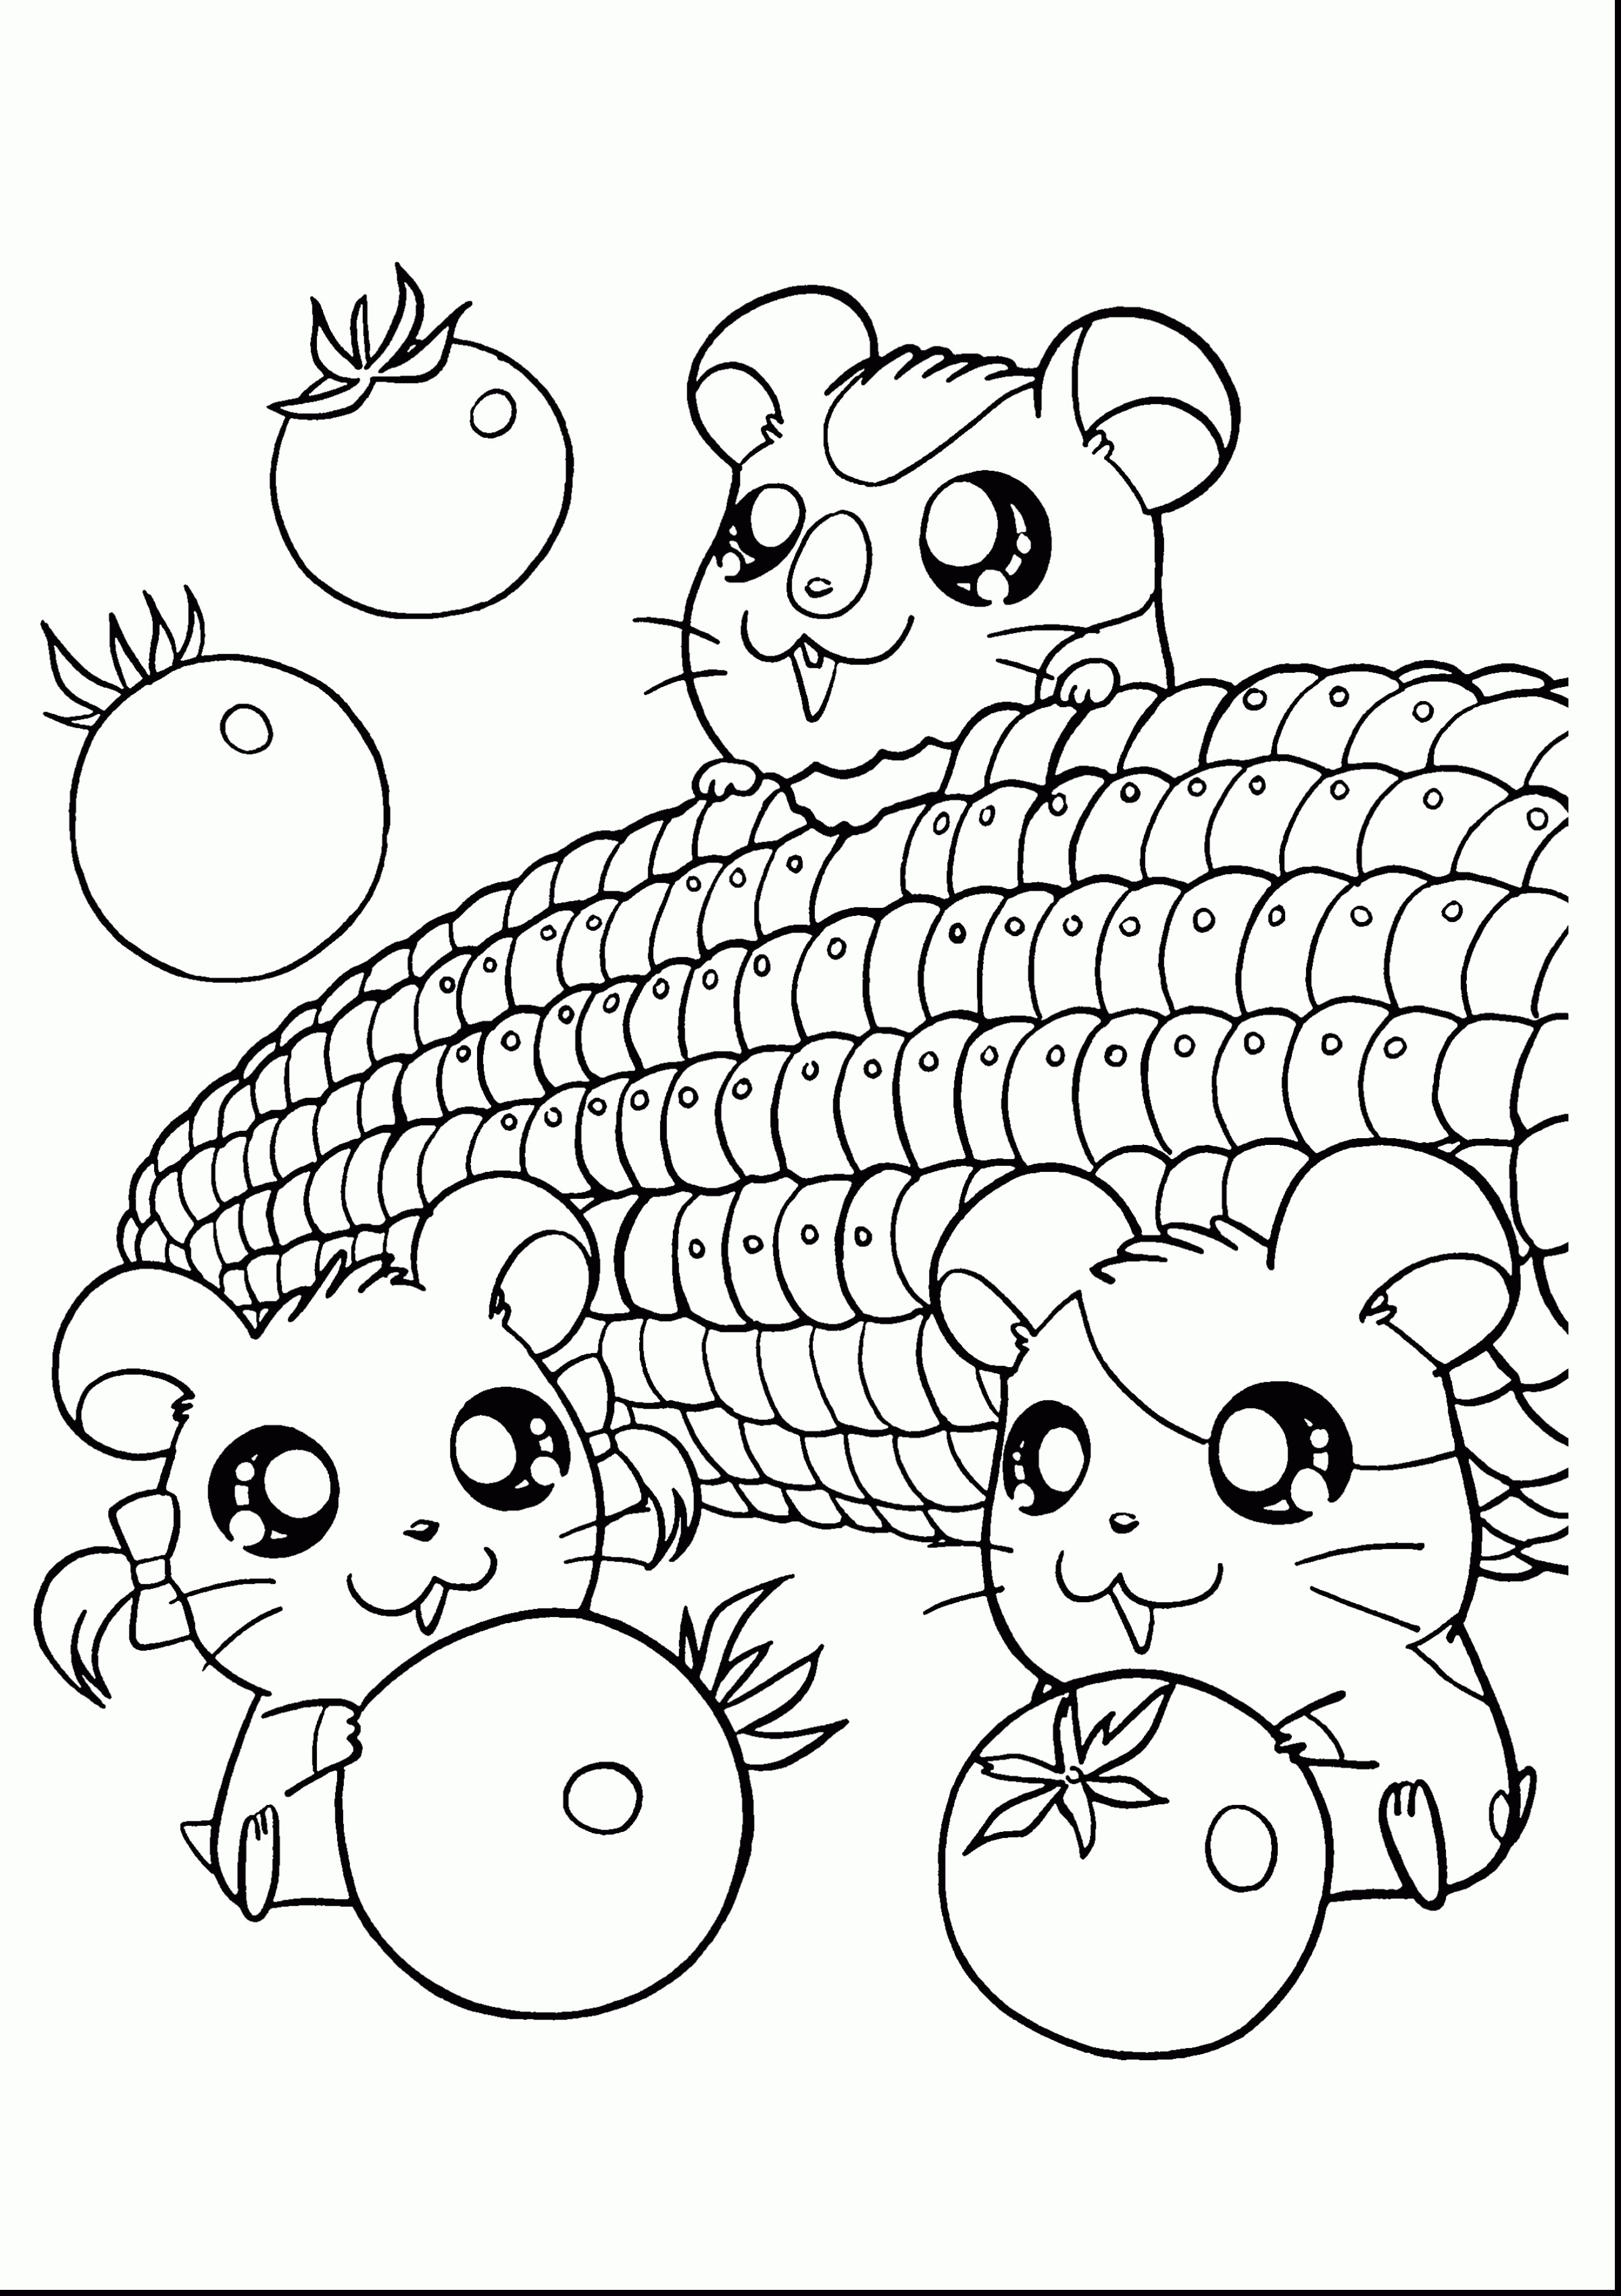 Kawaii Food Coloring Pages At Getdrawings Com Free For Personal